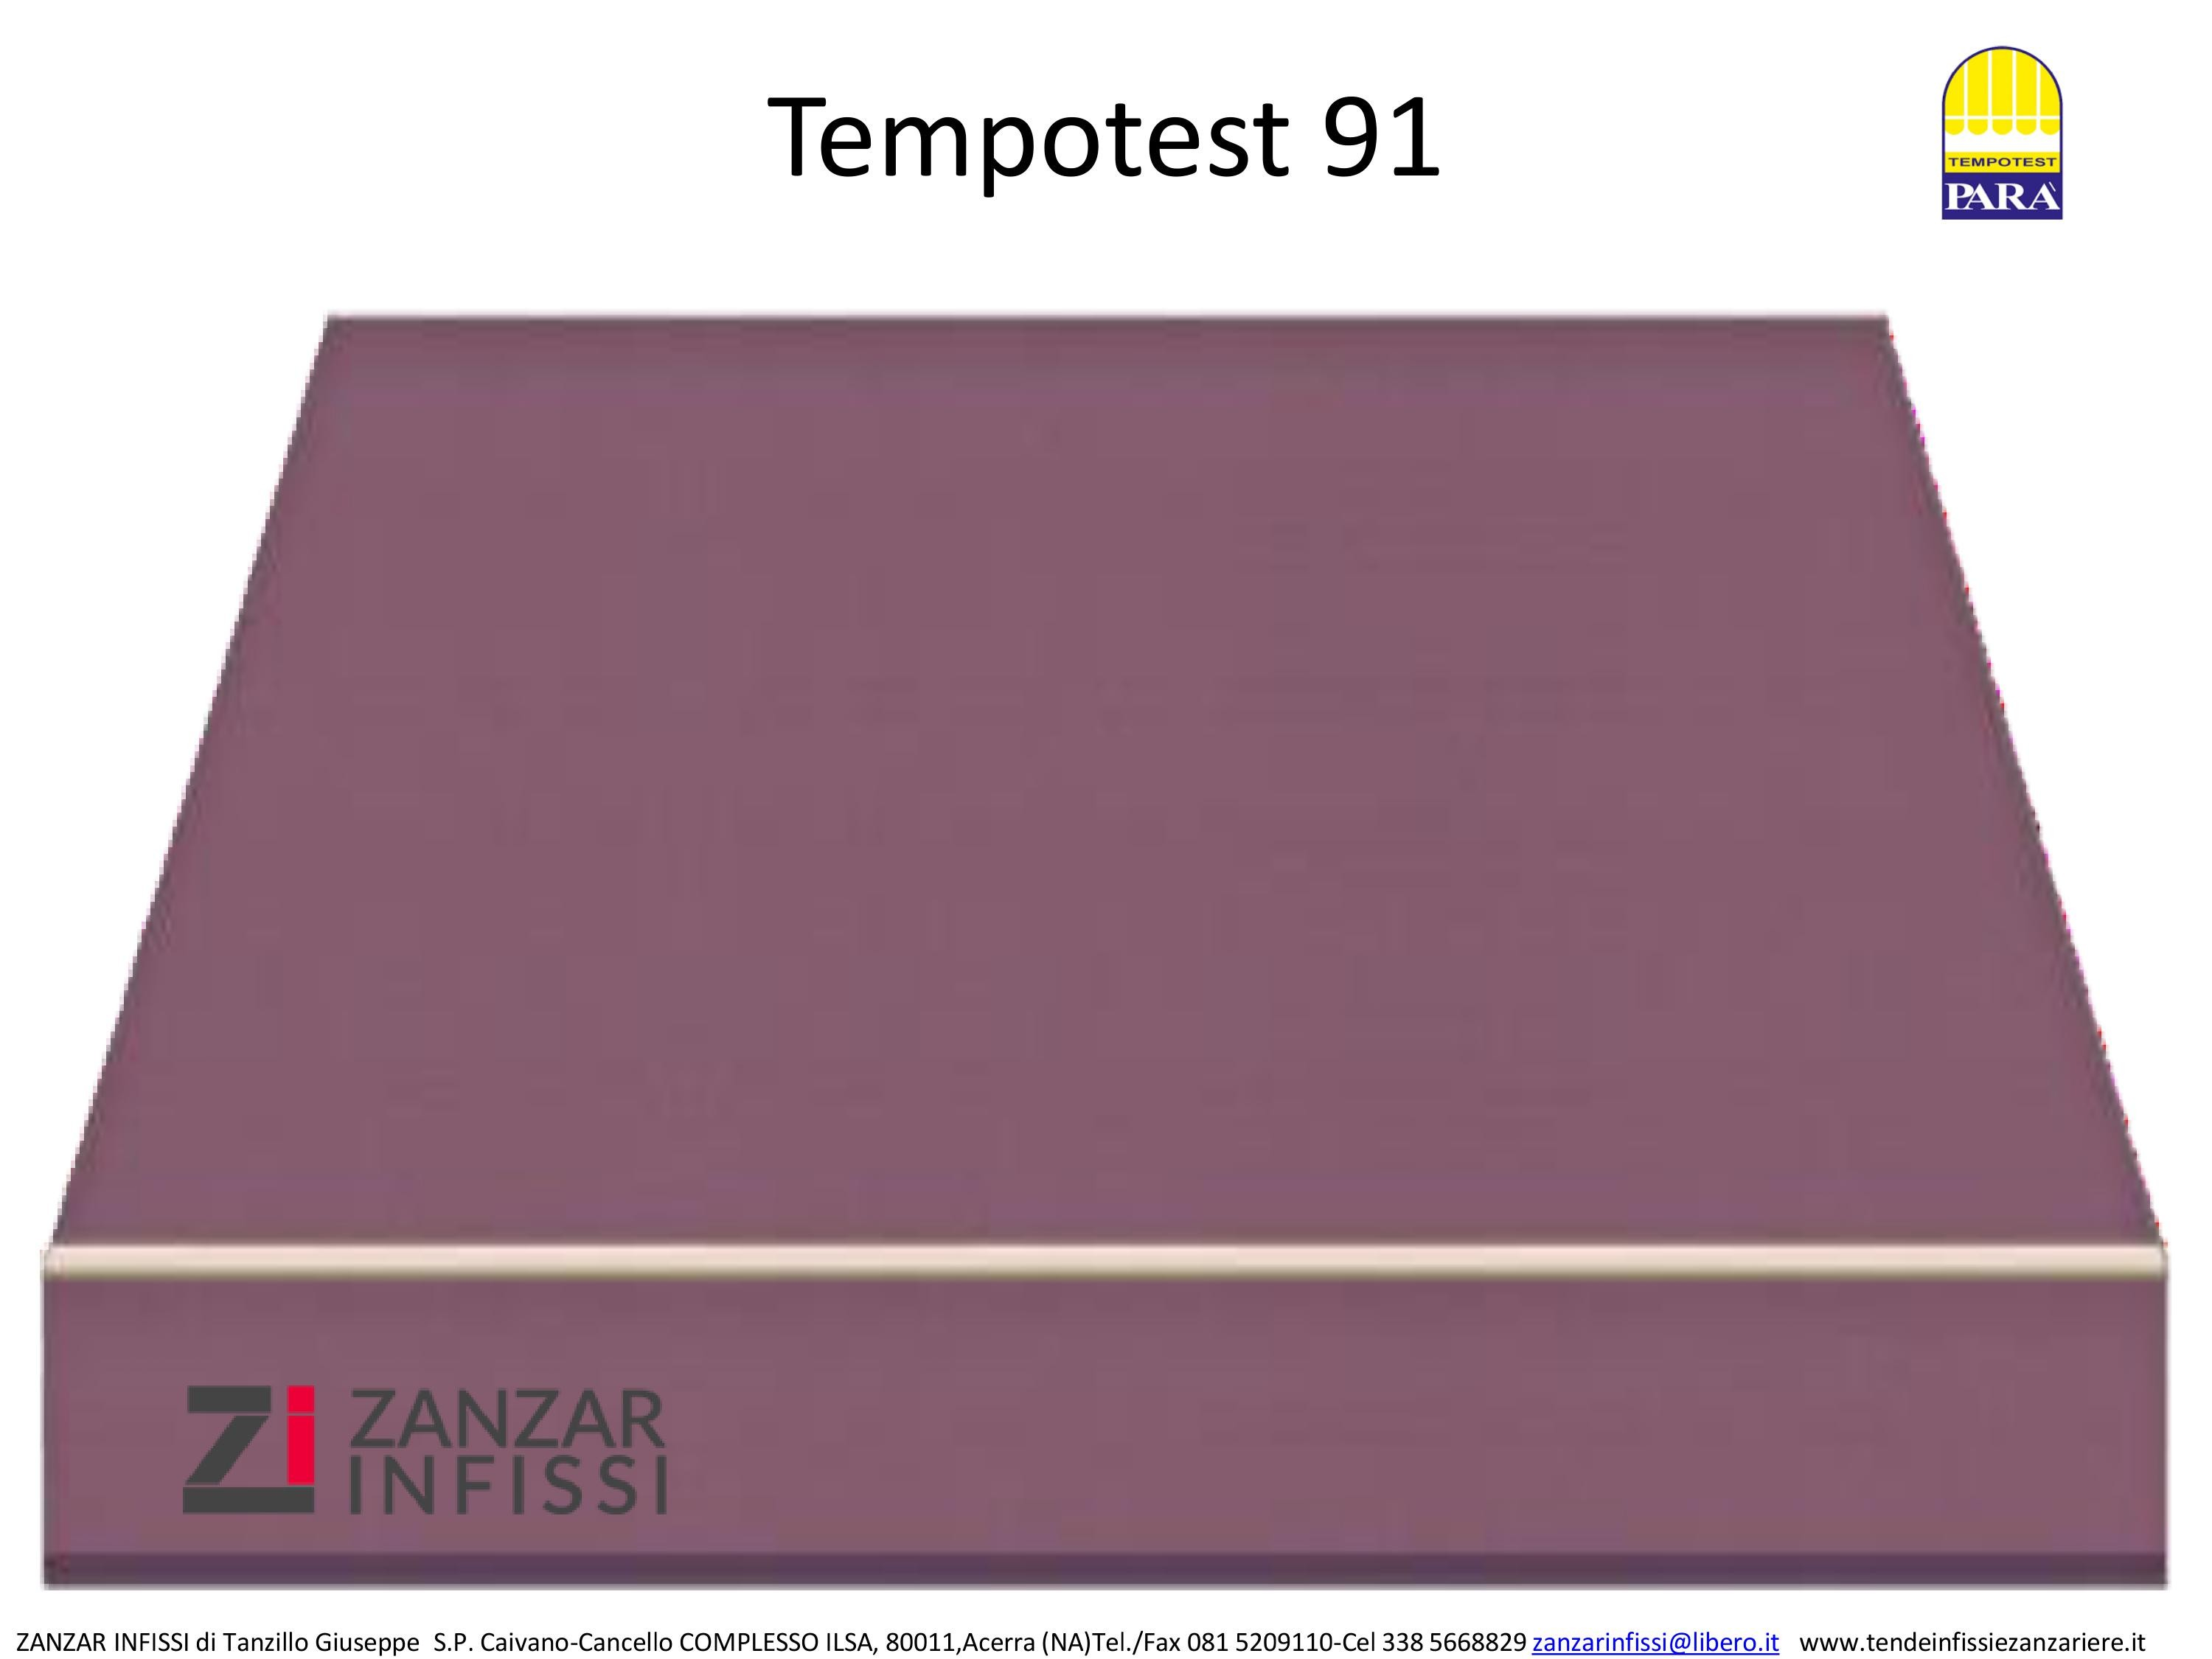 Tempotest 91